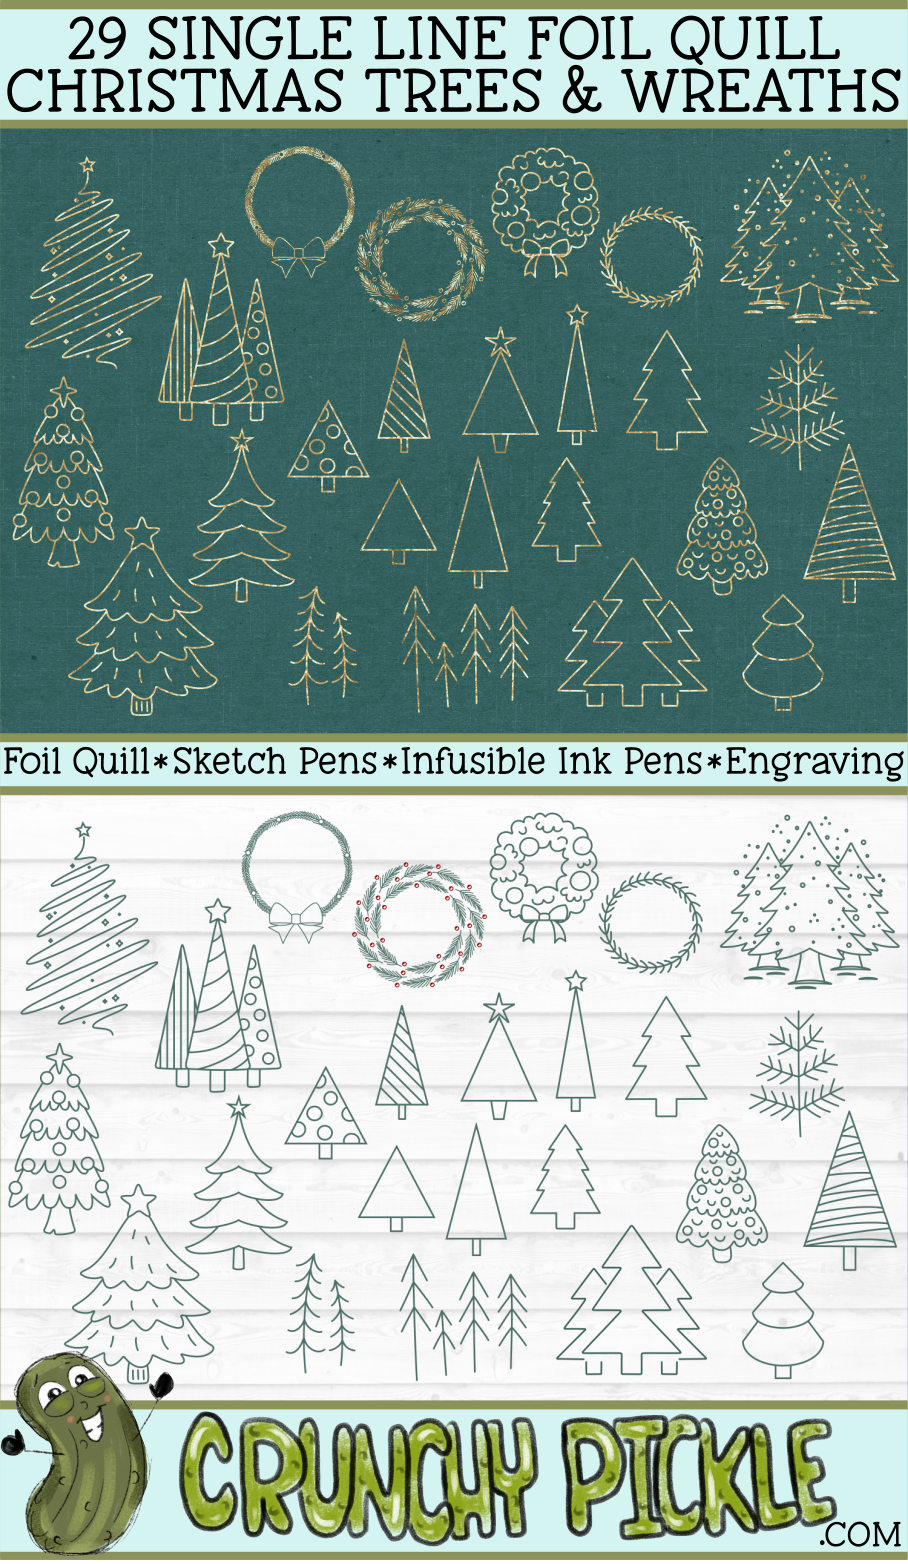 29 Foil Quill Christmas Trees & Wreaths Set / Single Line example image 3